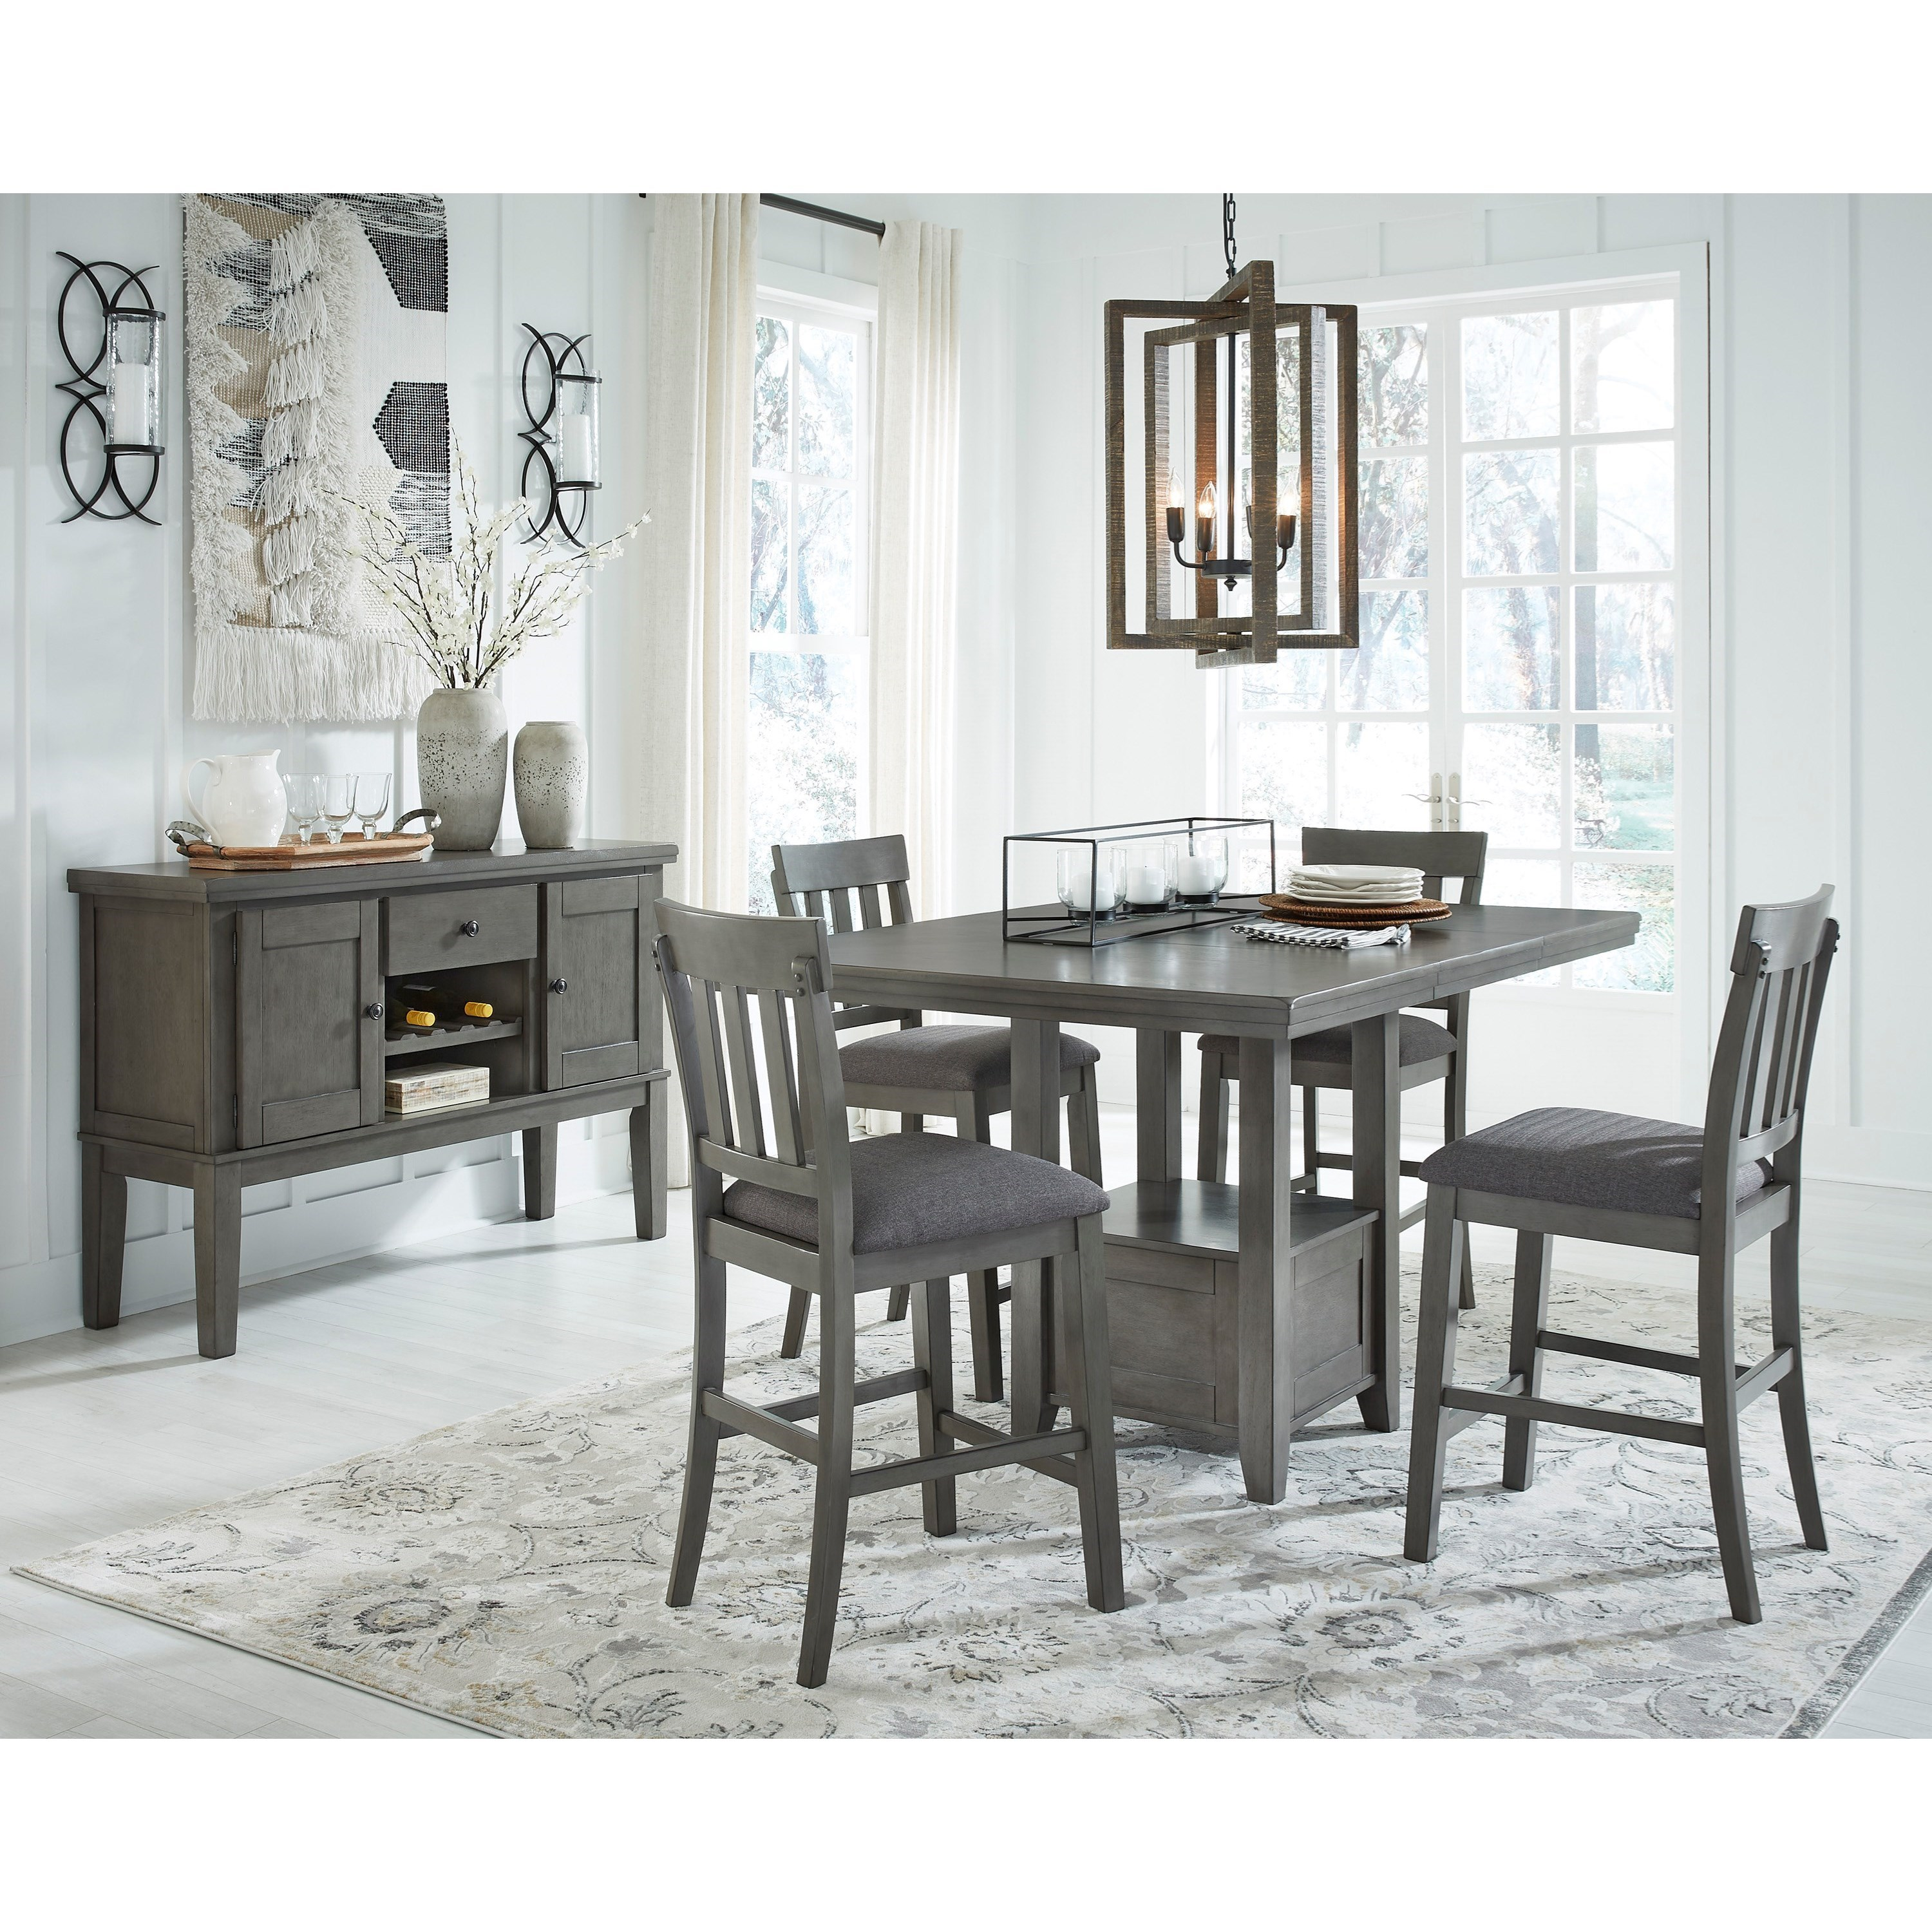 Hallanden Dining Room Group by Signature Design by Ashley at Northeast Factory Direct